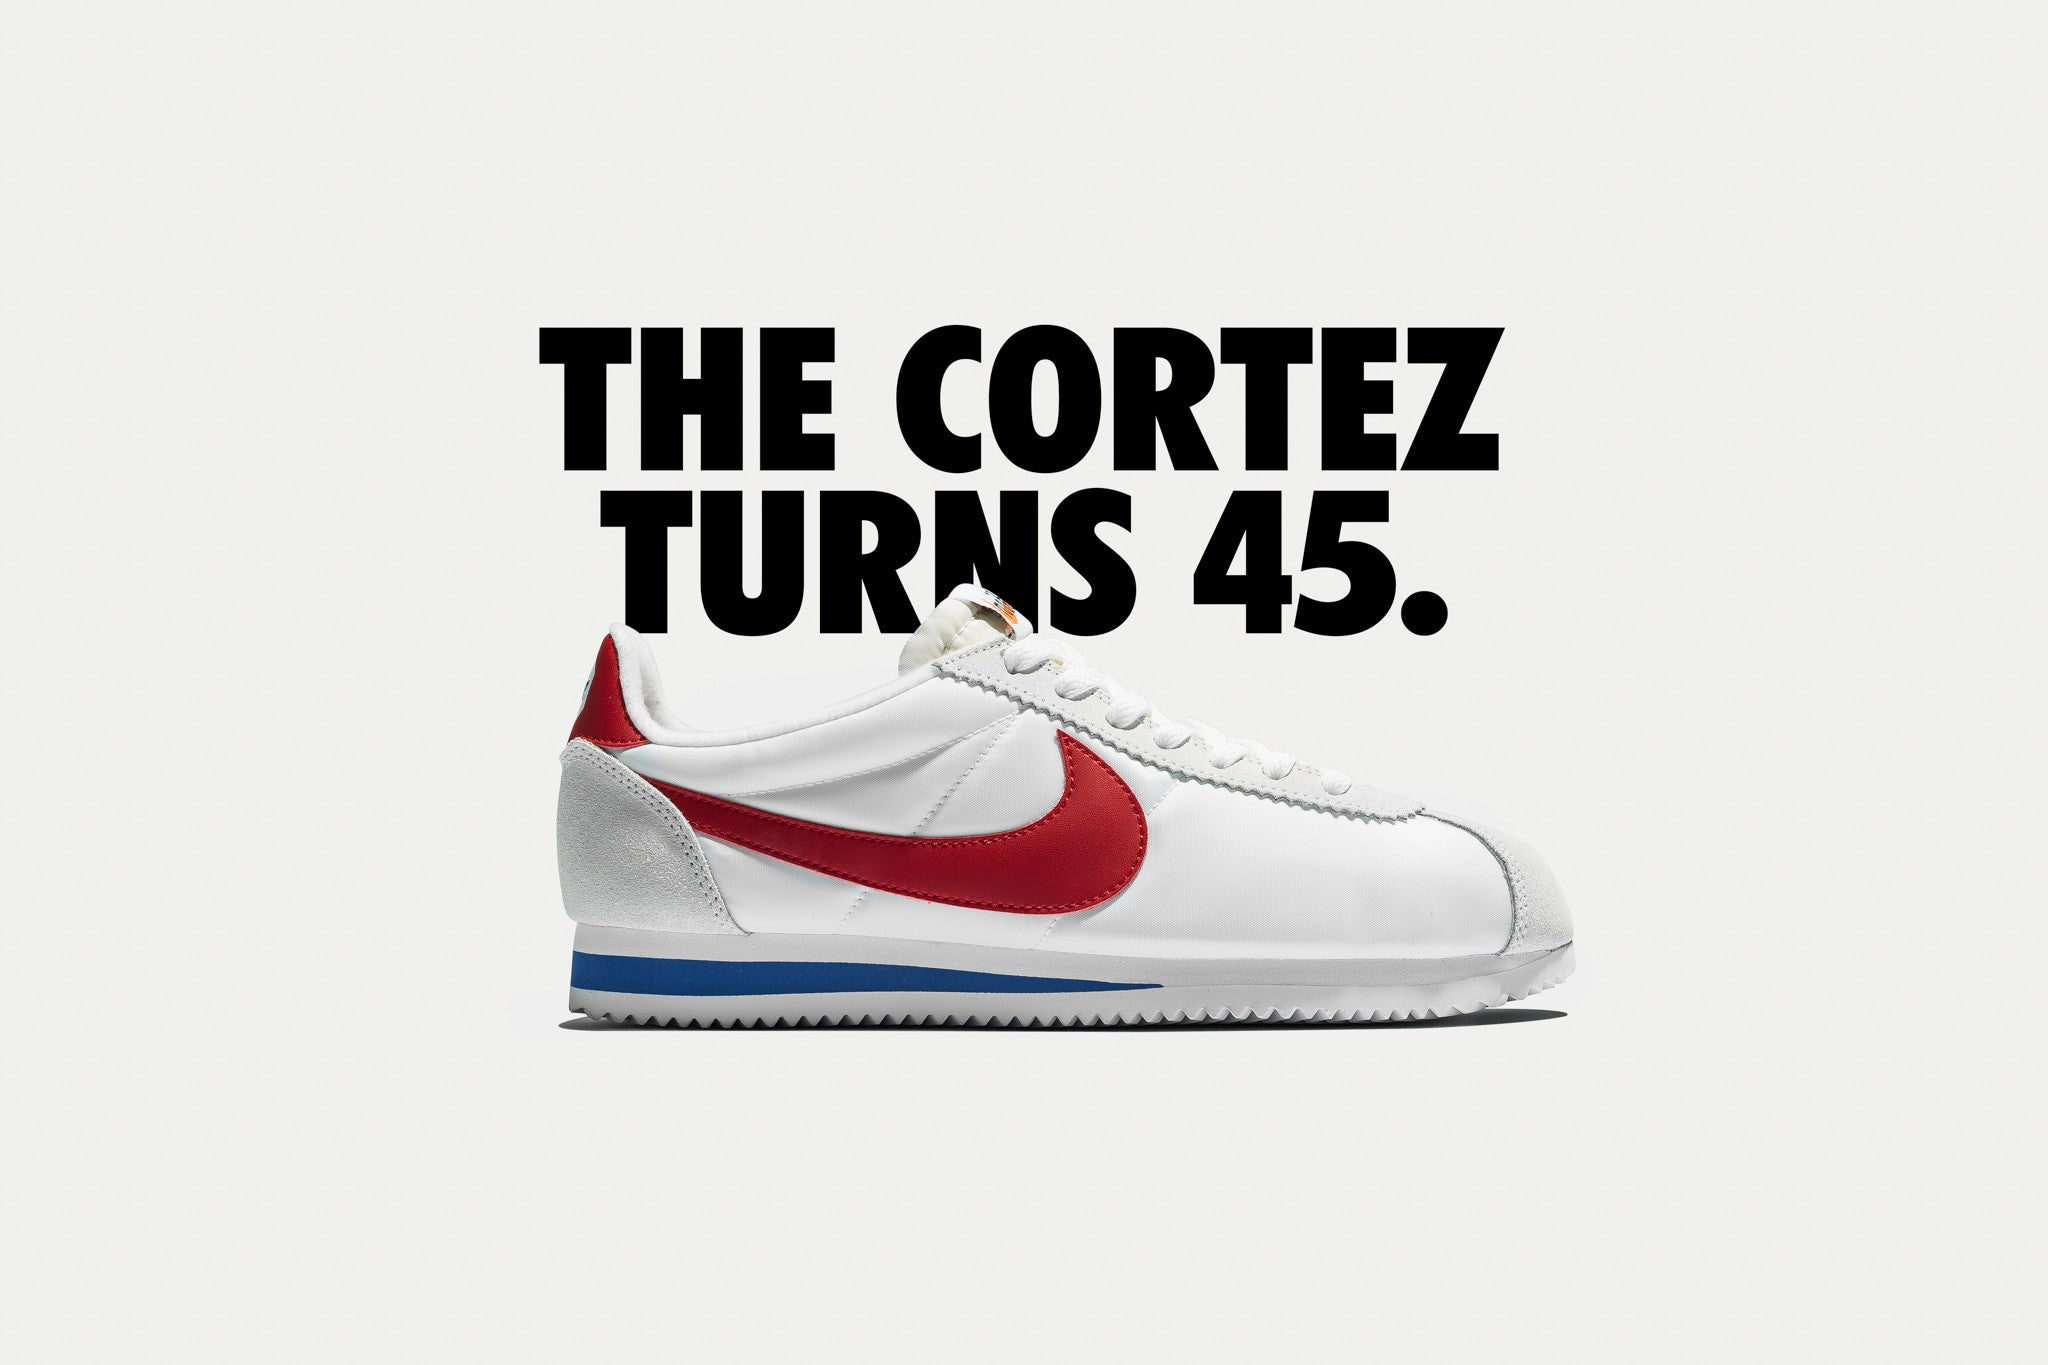 Capsule and Nike are celebrating the 45 great years of the pivotal Cortez  runner debuting in 1972. Co-founder Bill Bowerman strived to develop better  ...